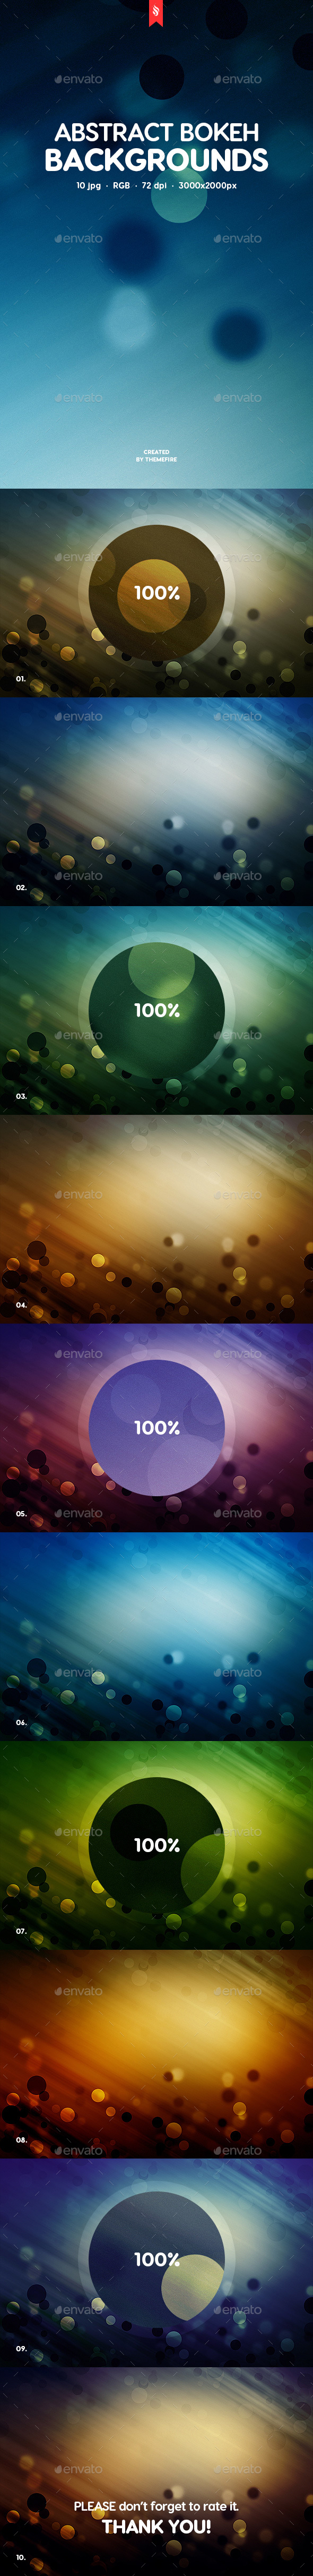 10 Abstract Bokeh Backgrounds - Abstract Backgrounds